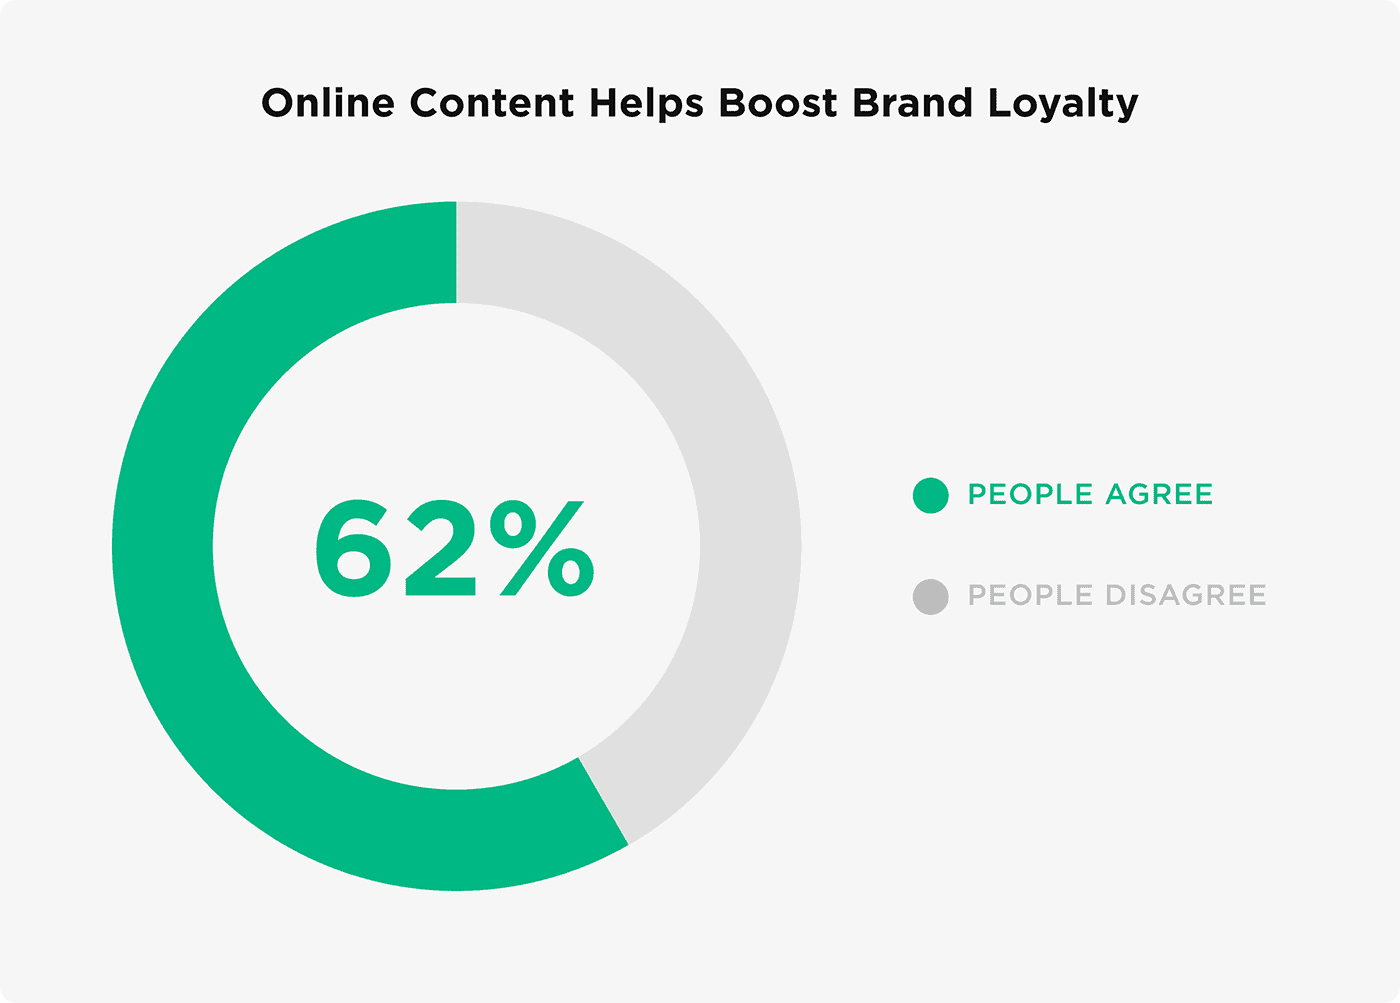 Online content helps boost brand loyalty